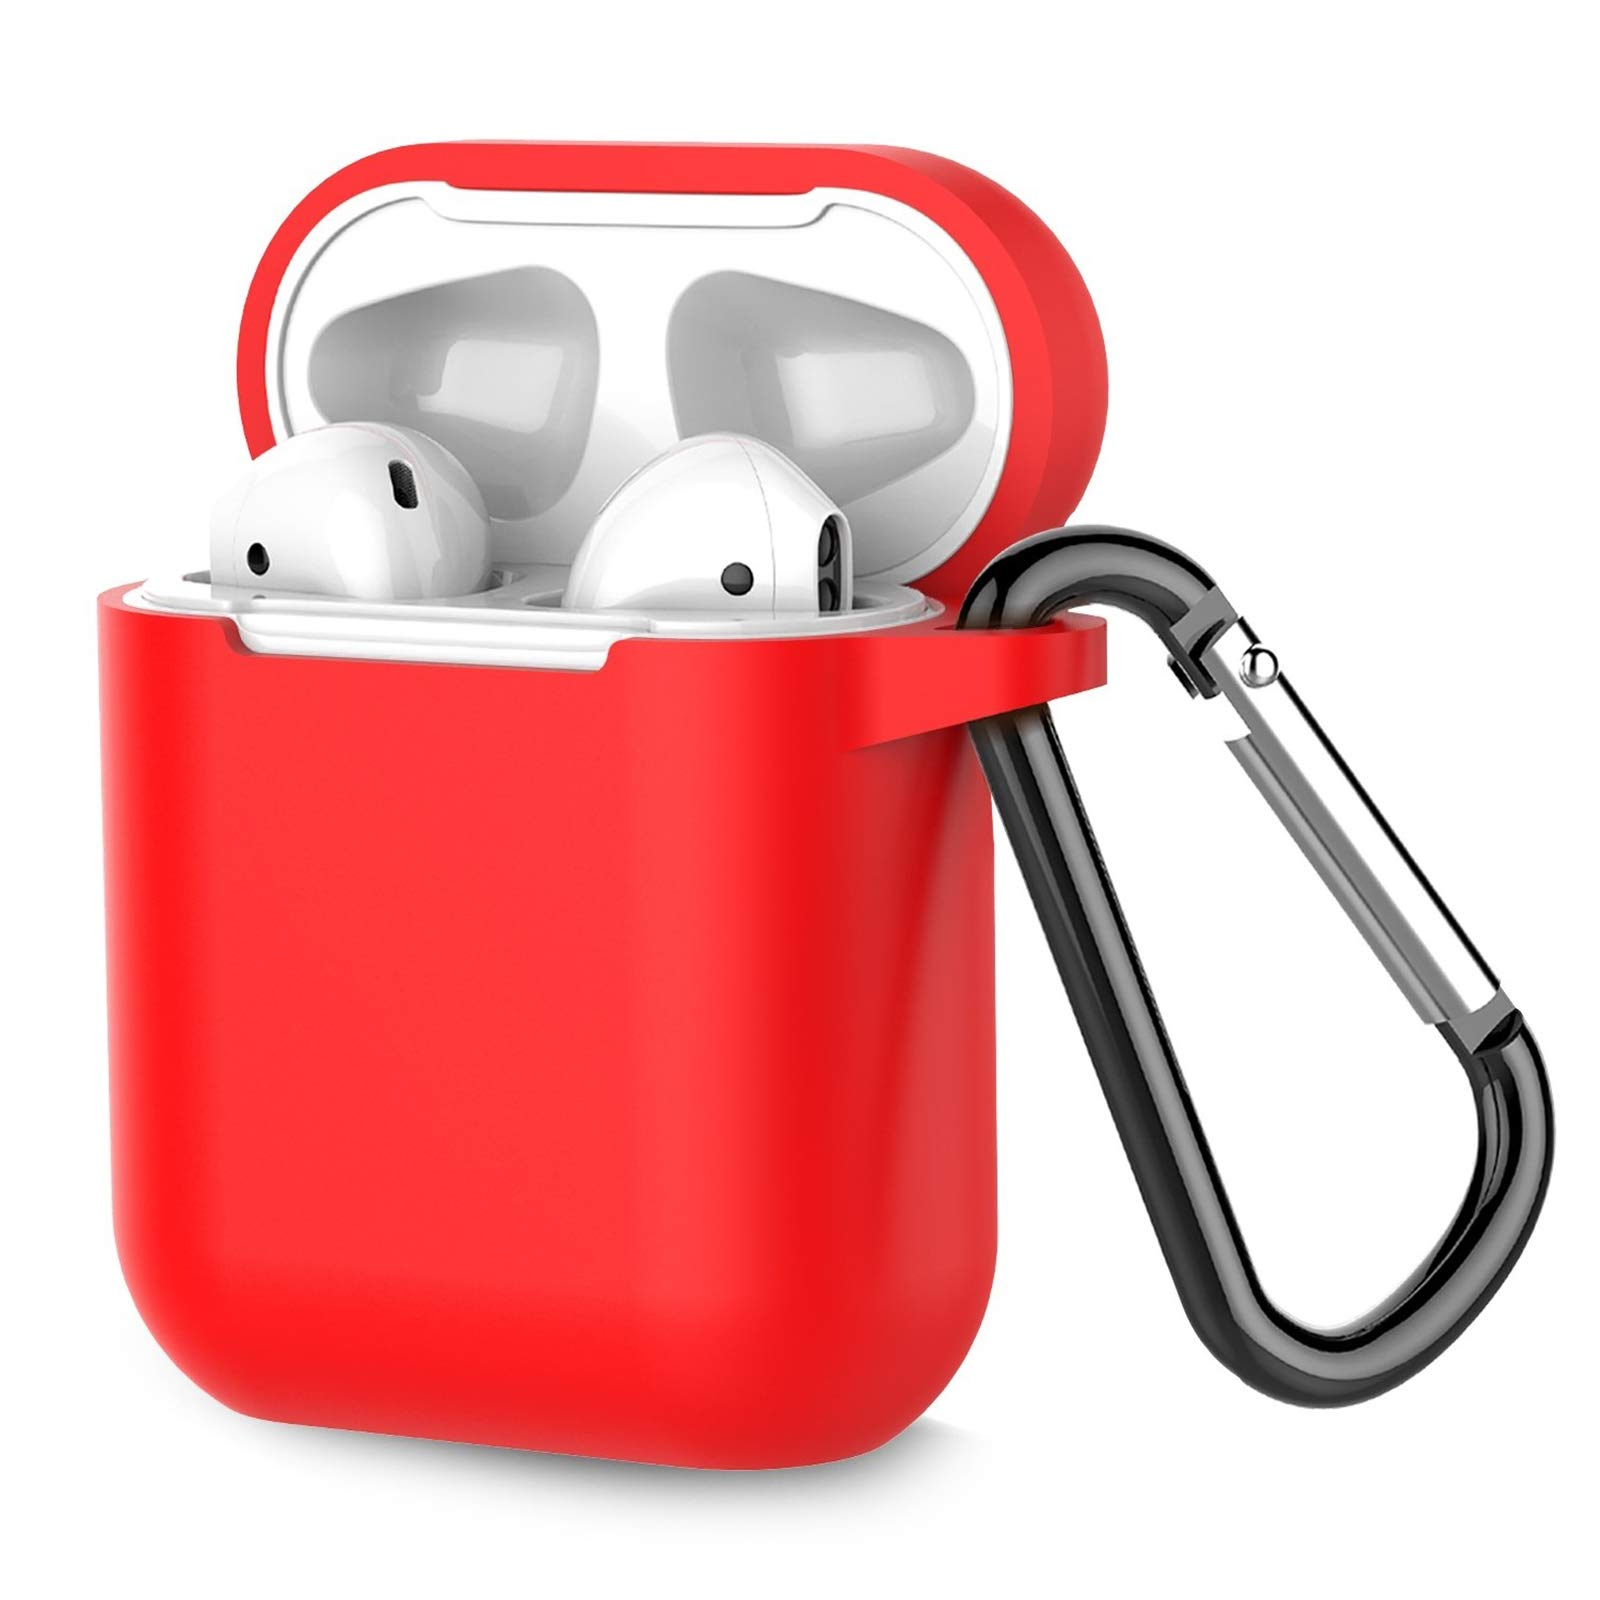 Atrovirens+Black AirPods Case Keychain Coffea 2 Pack Protective Silicone Case Cover and Skin with Anti-Lost Strap for AirPods 1 /& 2 Charging Case